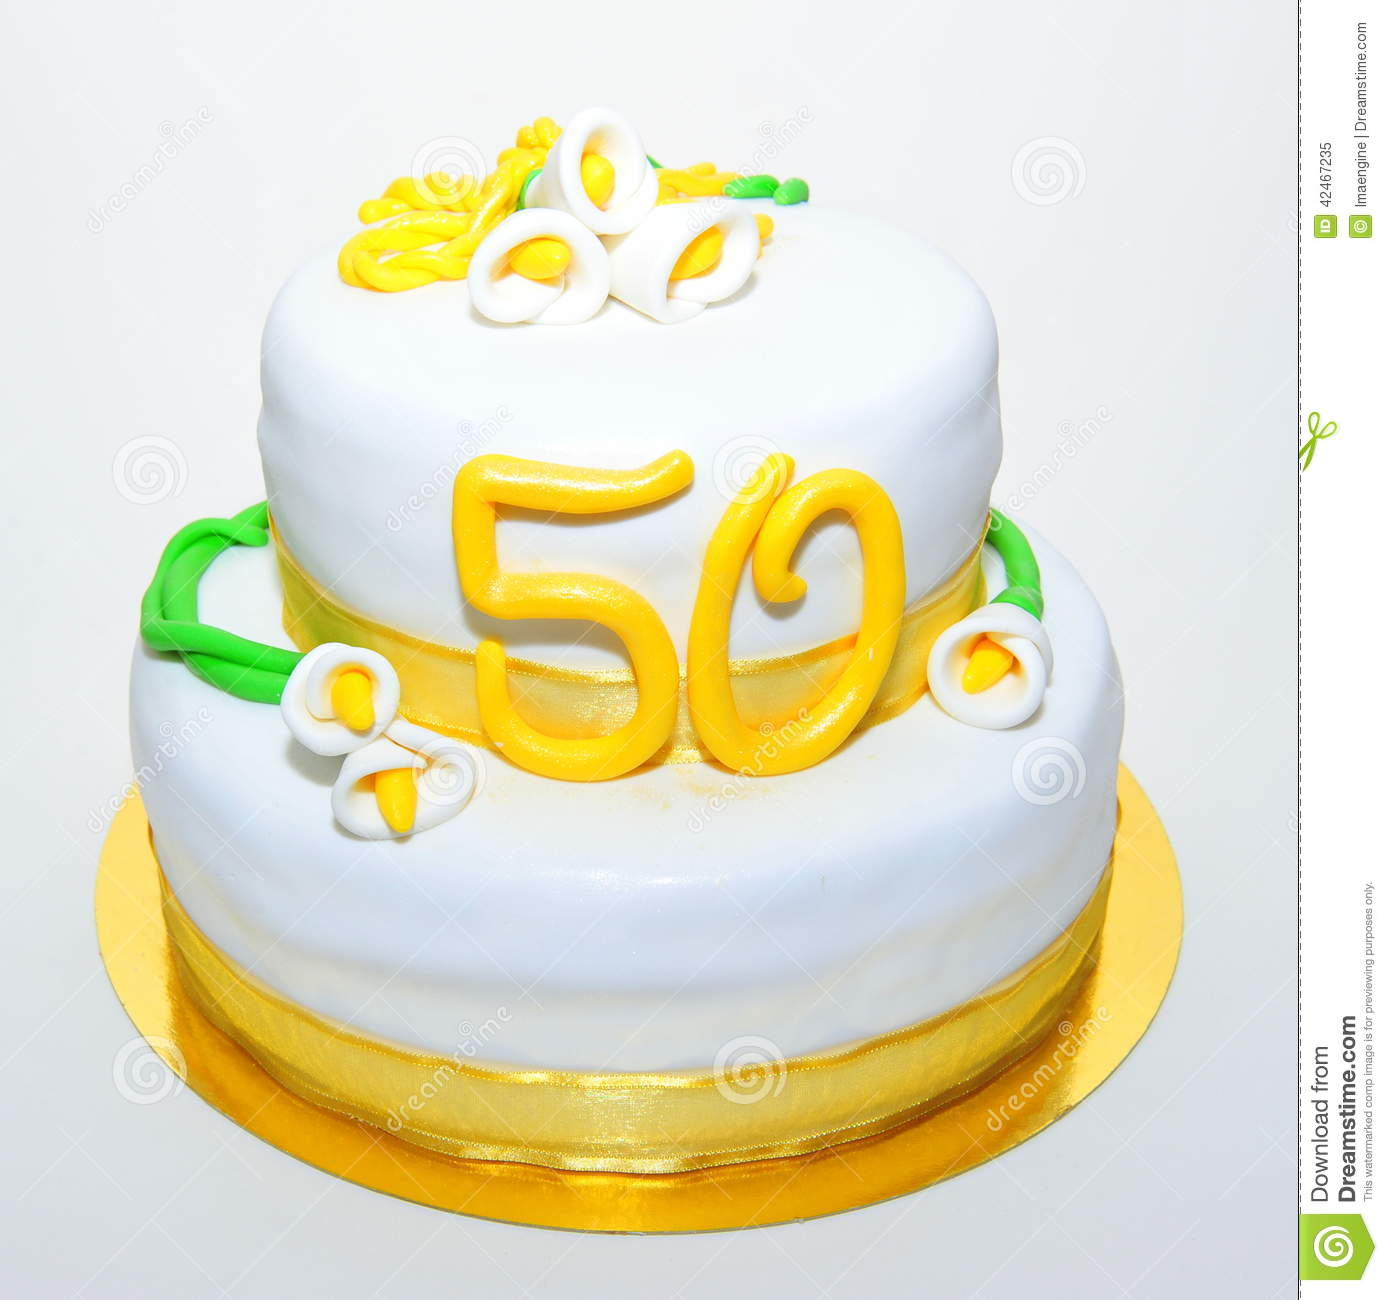 Fifty Years Of Marriage Anniversary Cake Stock Image - Image of ...